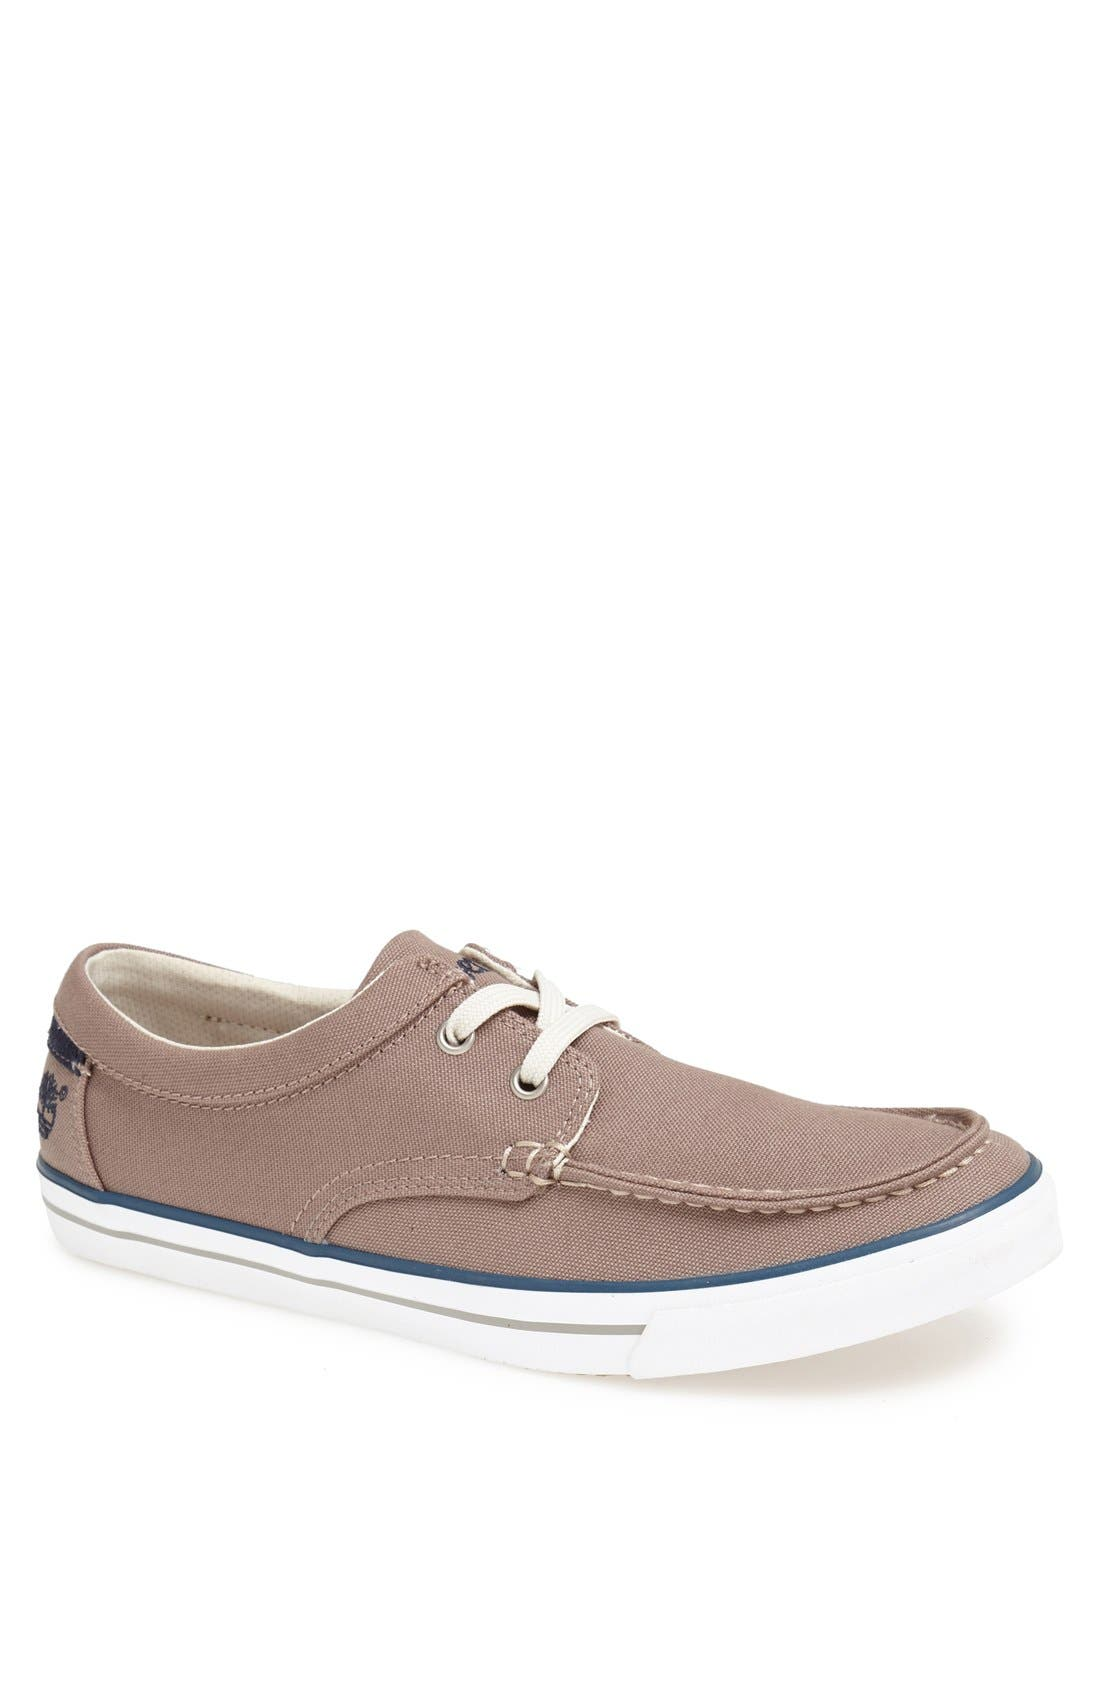 Alternate Image 1 Selected - Timberland Earthkeepers® 'Hookset' Boat Shoe (Men)